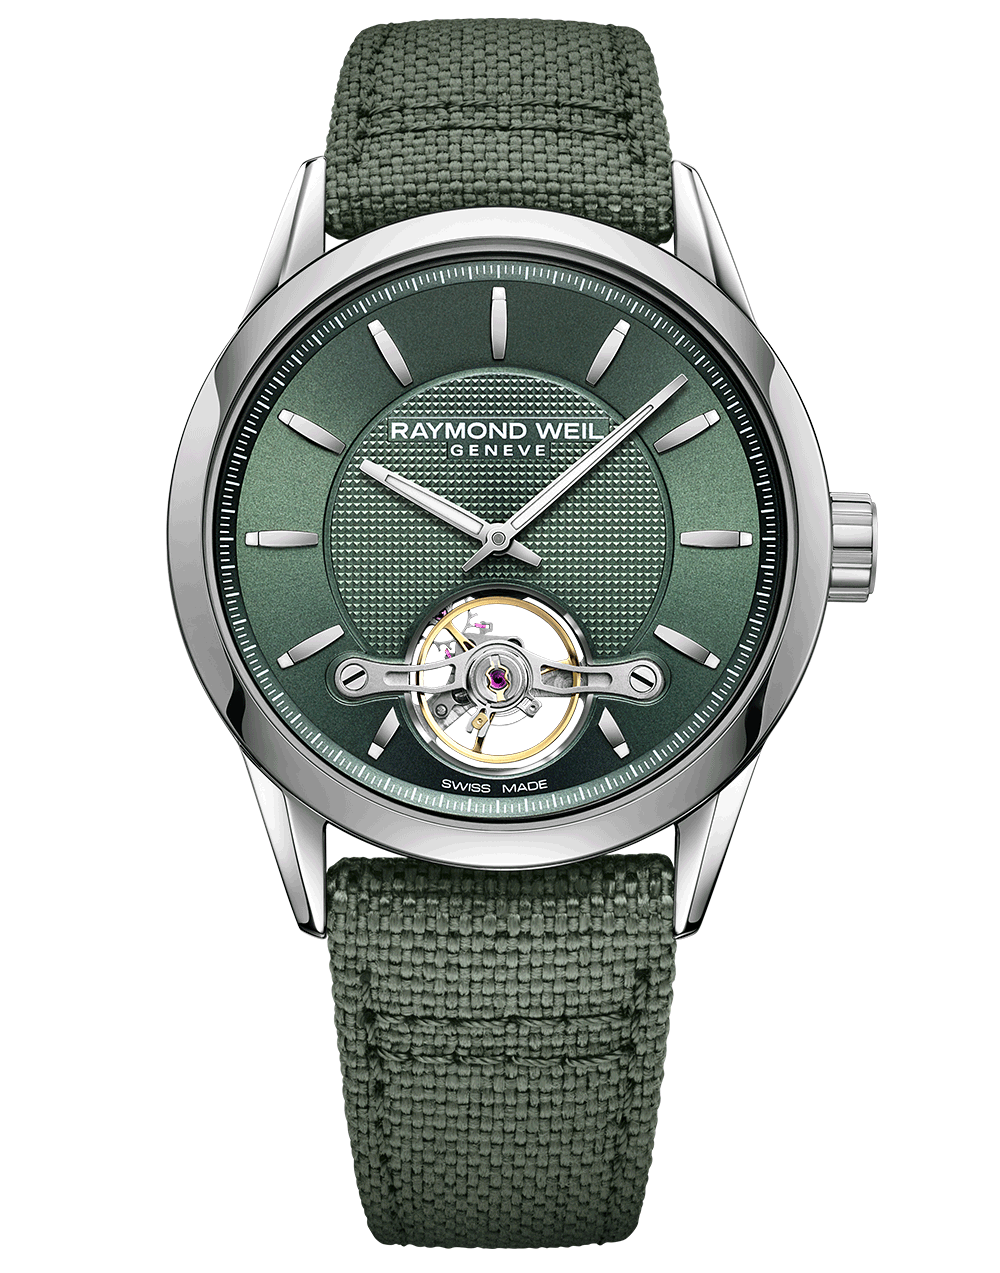 RAYMOND WEIL RW1212 men's green freelancer automatic watch front view